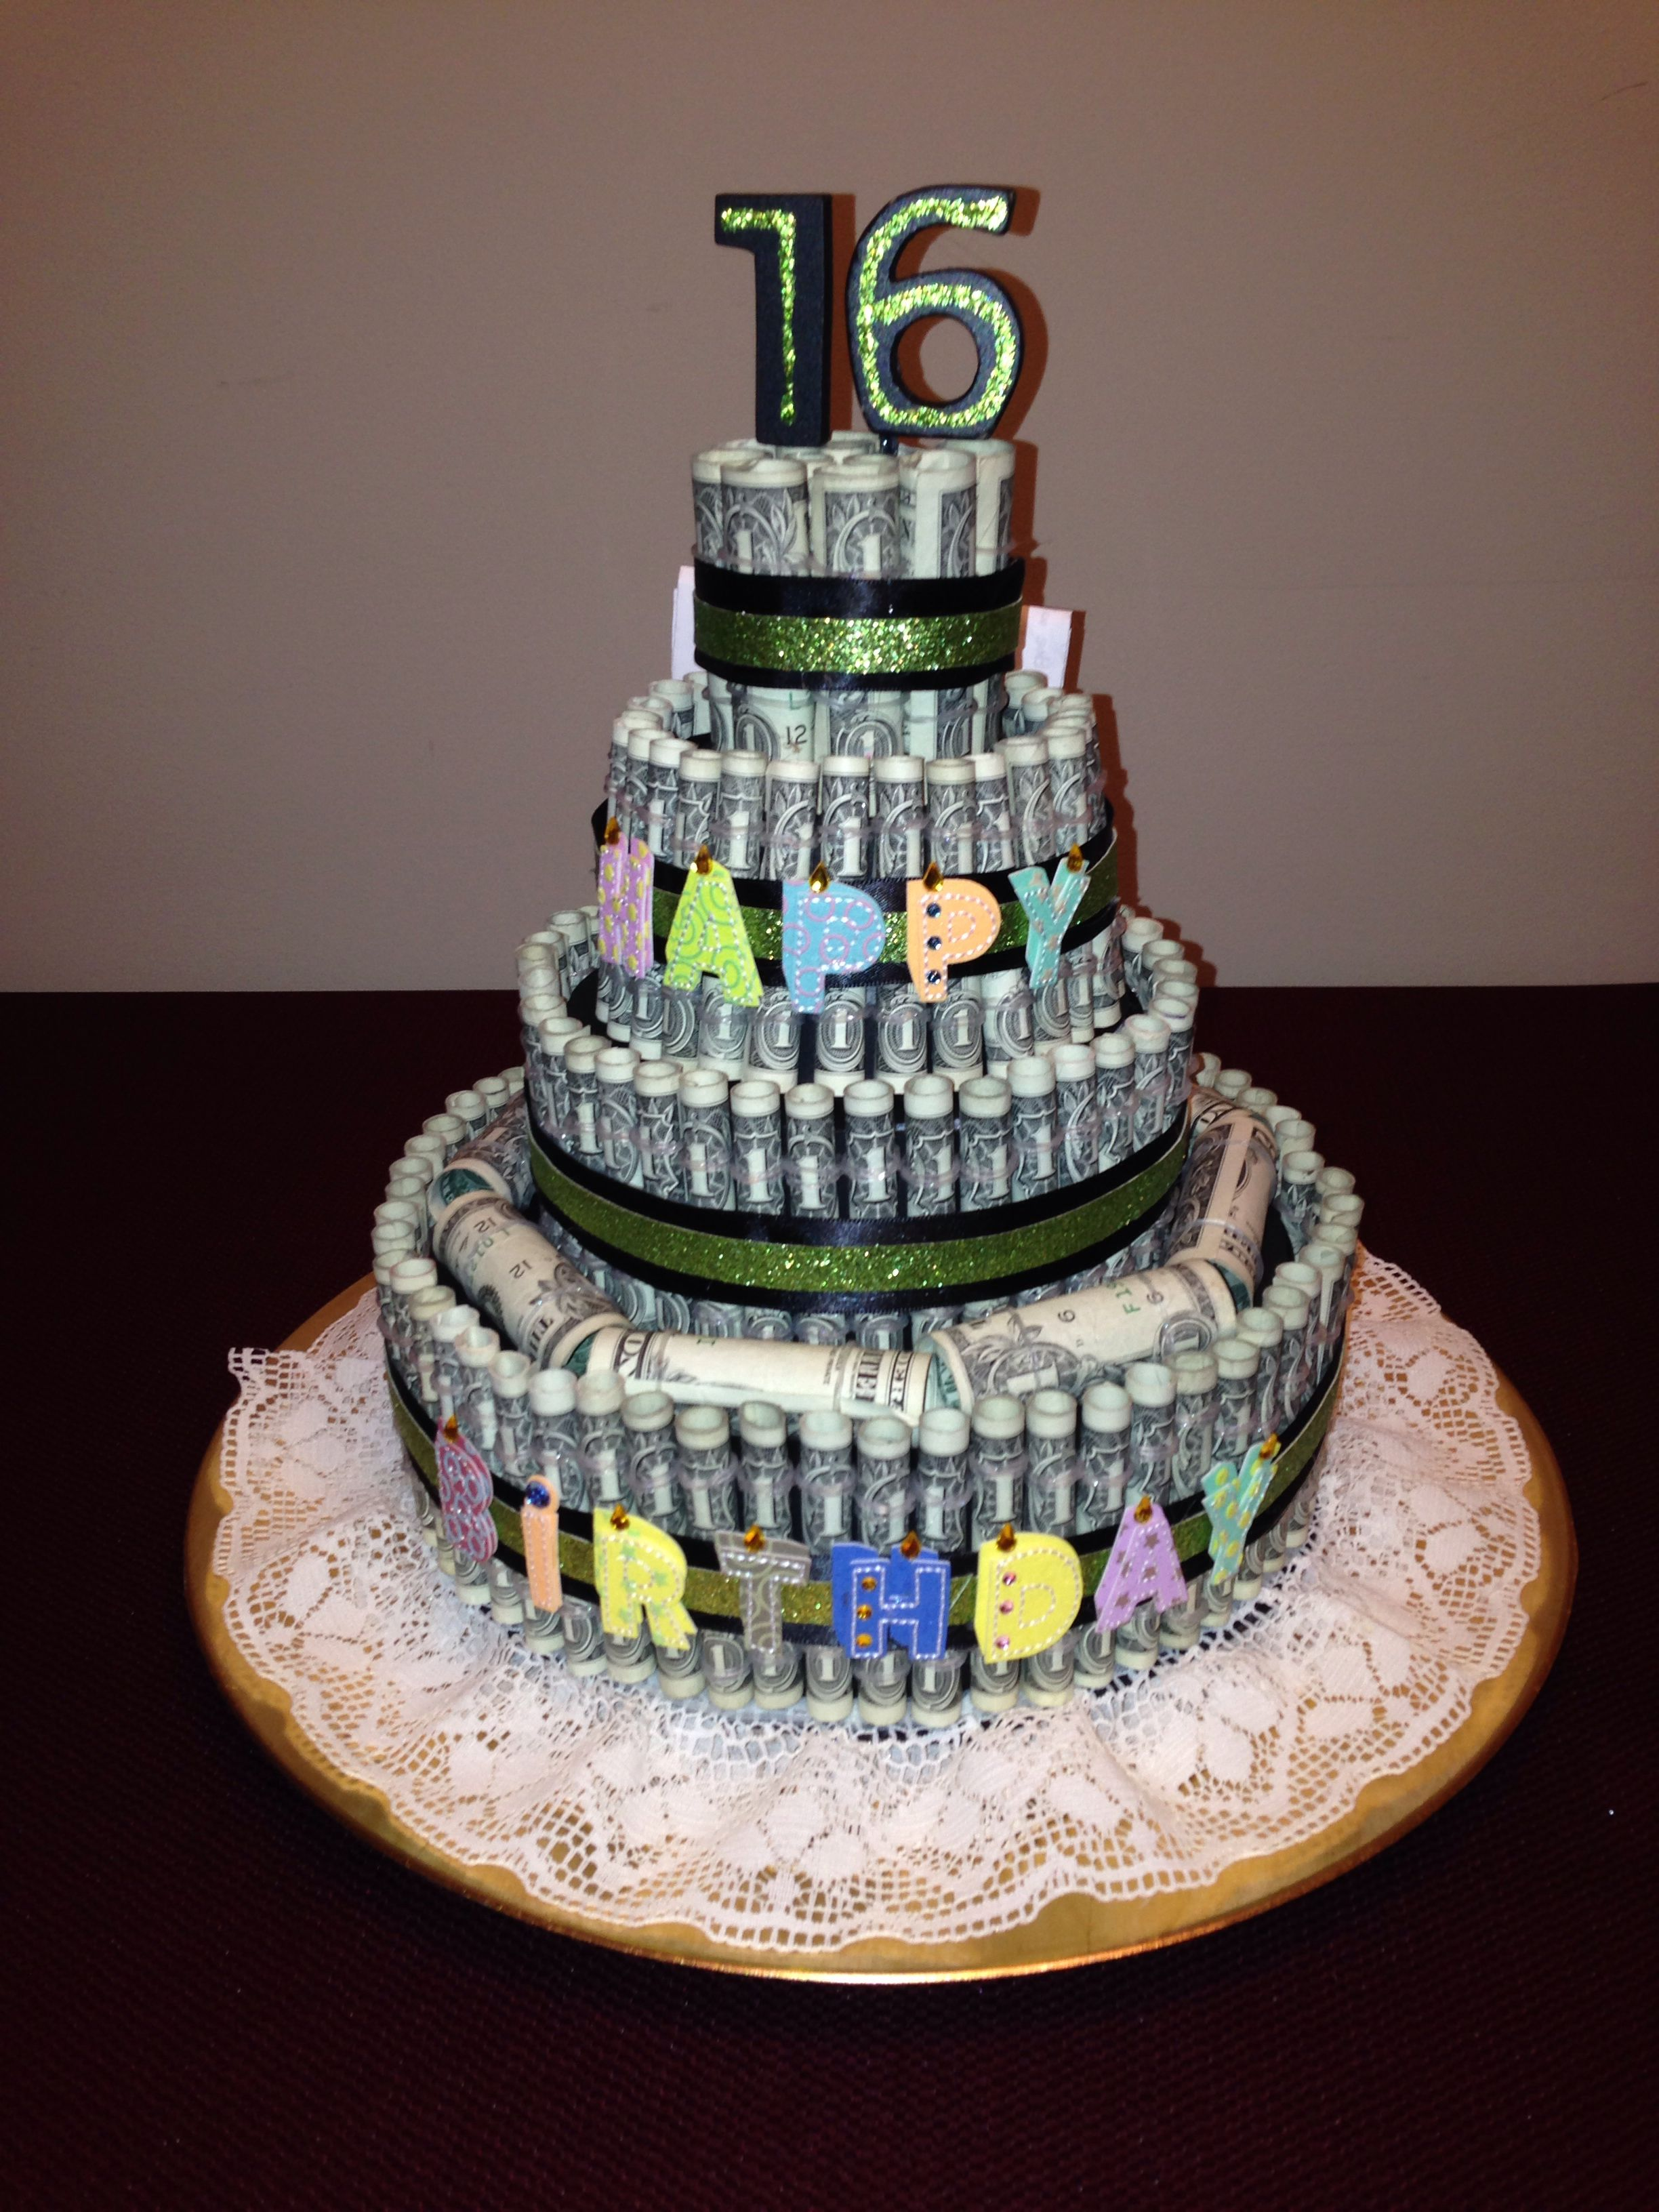 Money cake we need to make this for grandma pearl 39 s birthday 2014 projects me and my girl - Money cake decorations ...